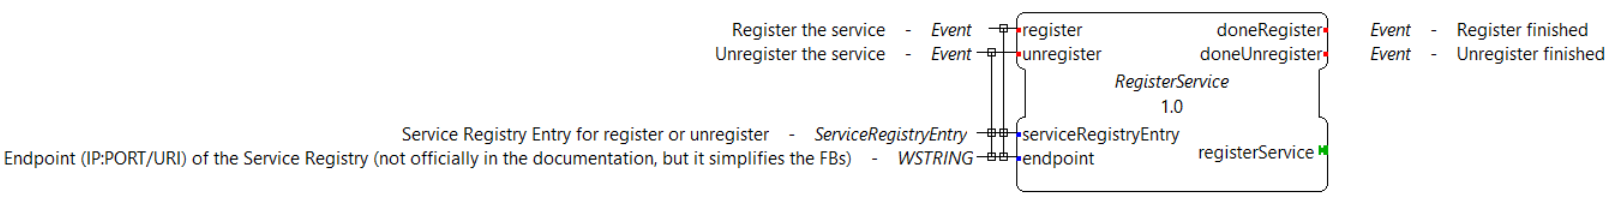 Abstract definition of the Register Service offered by the Service Registry core system